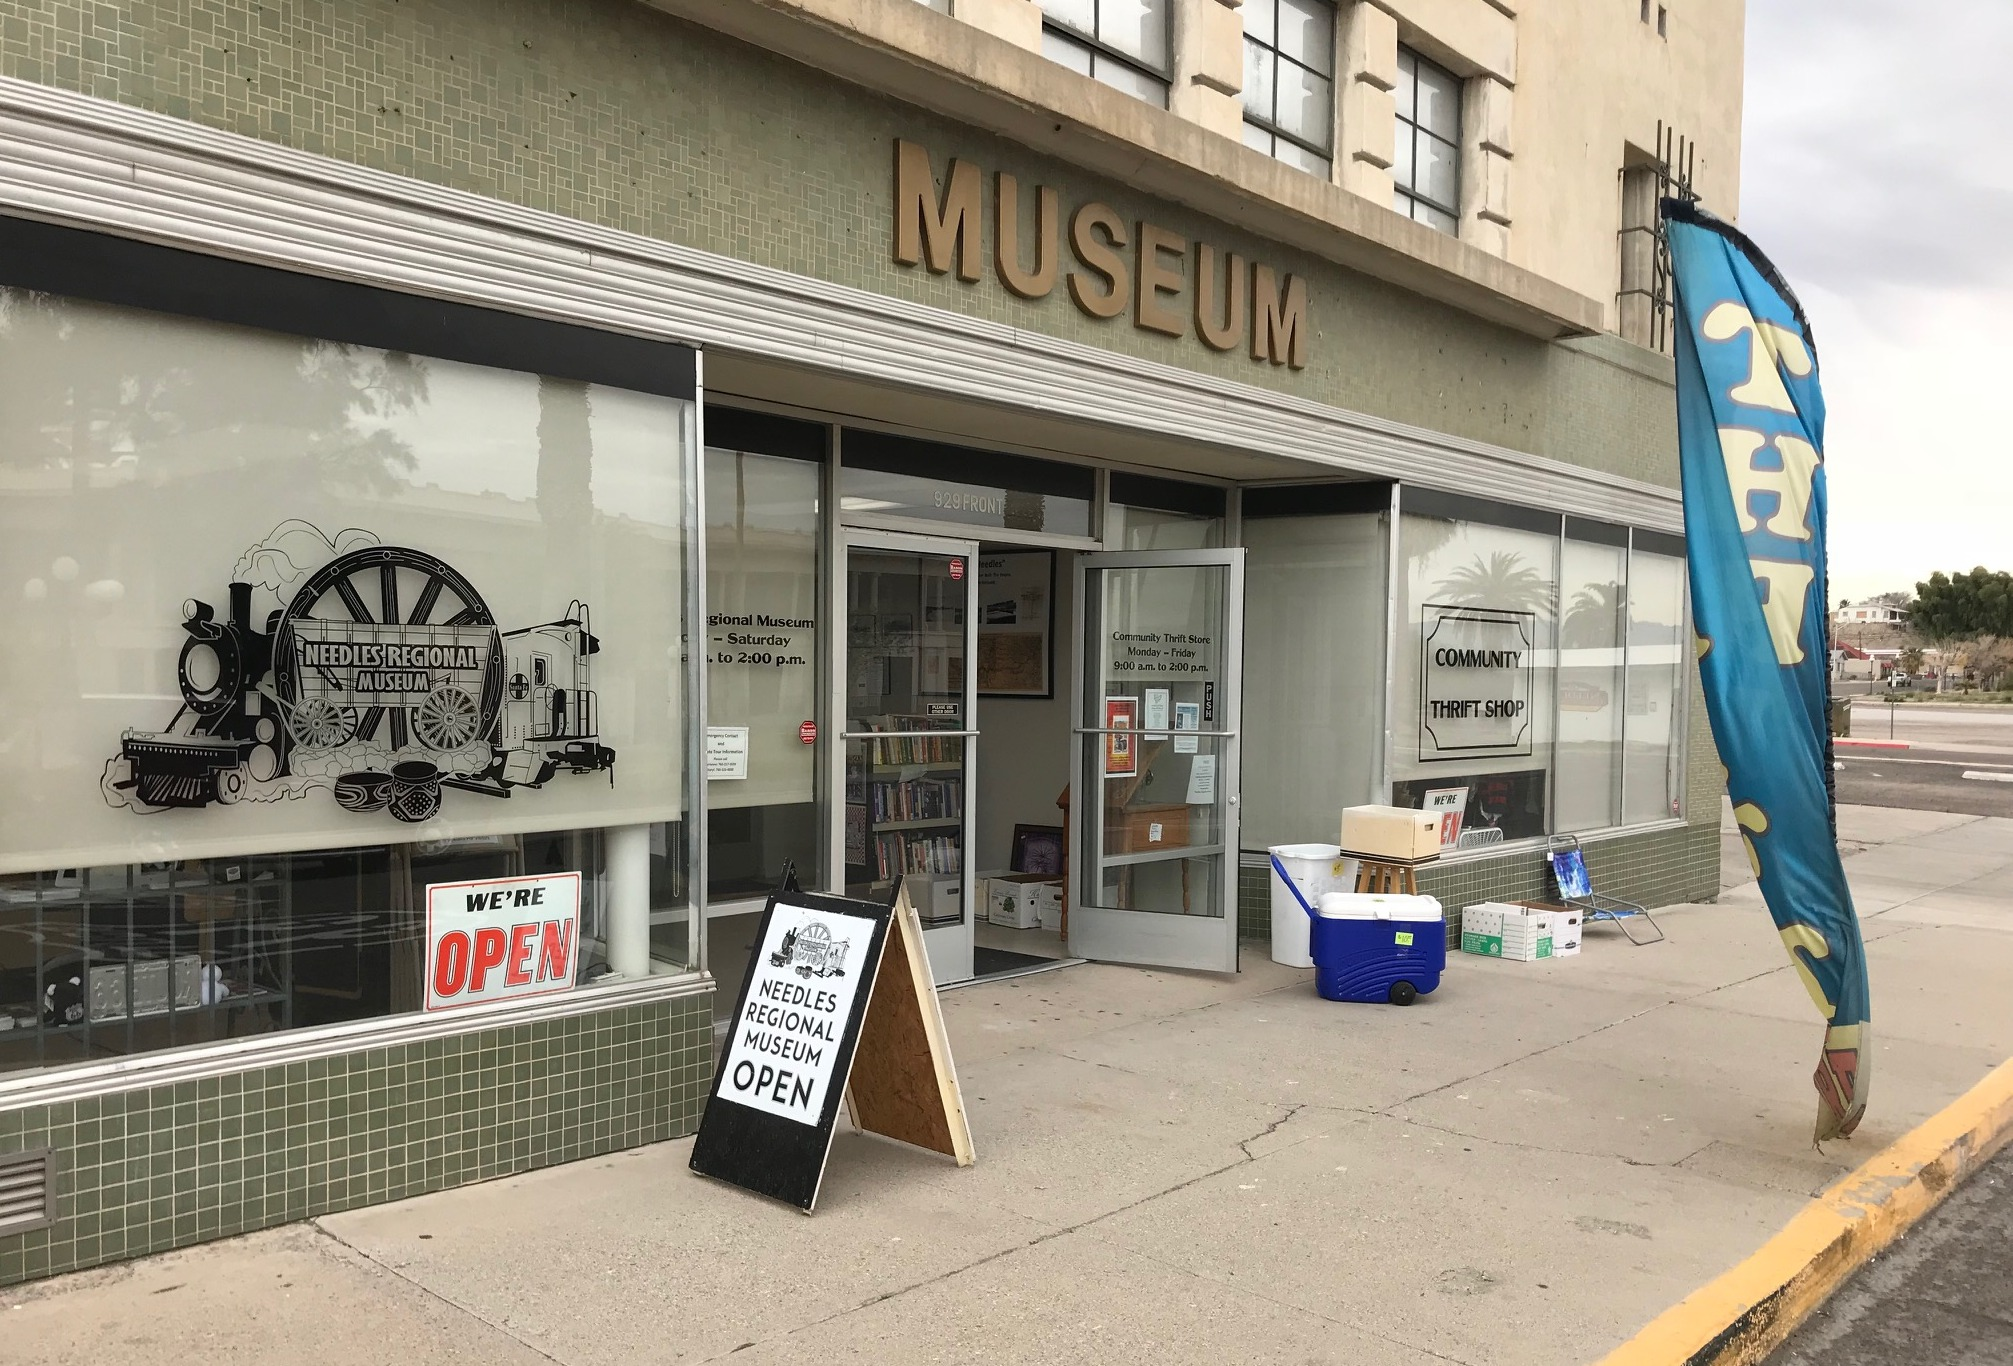 Needles Regional Museum AND thrift shop